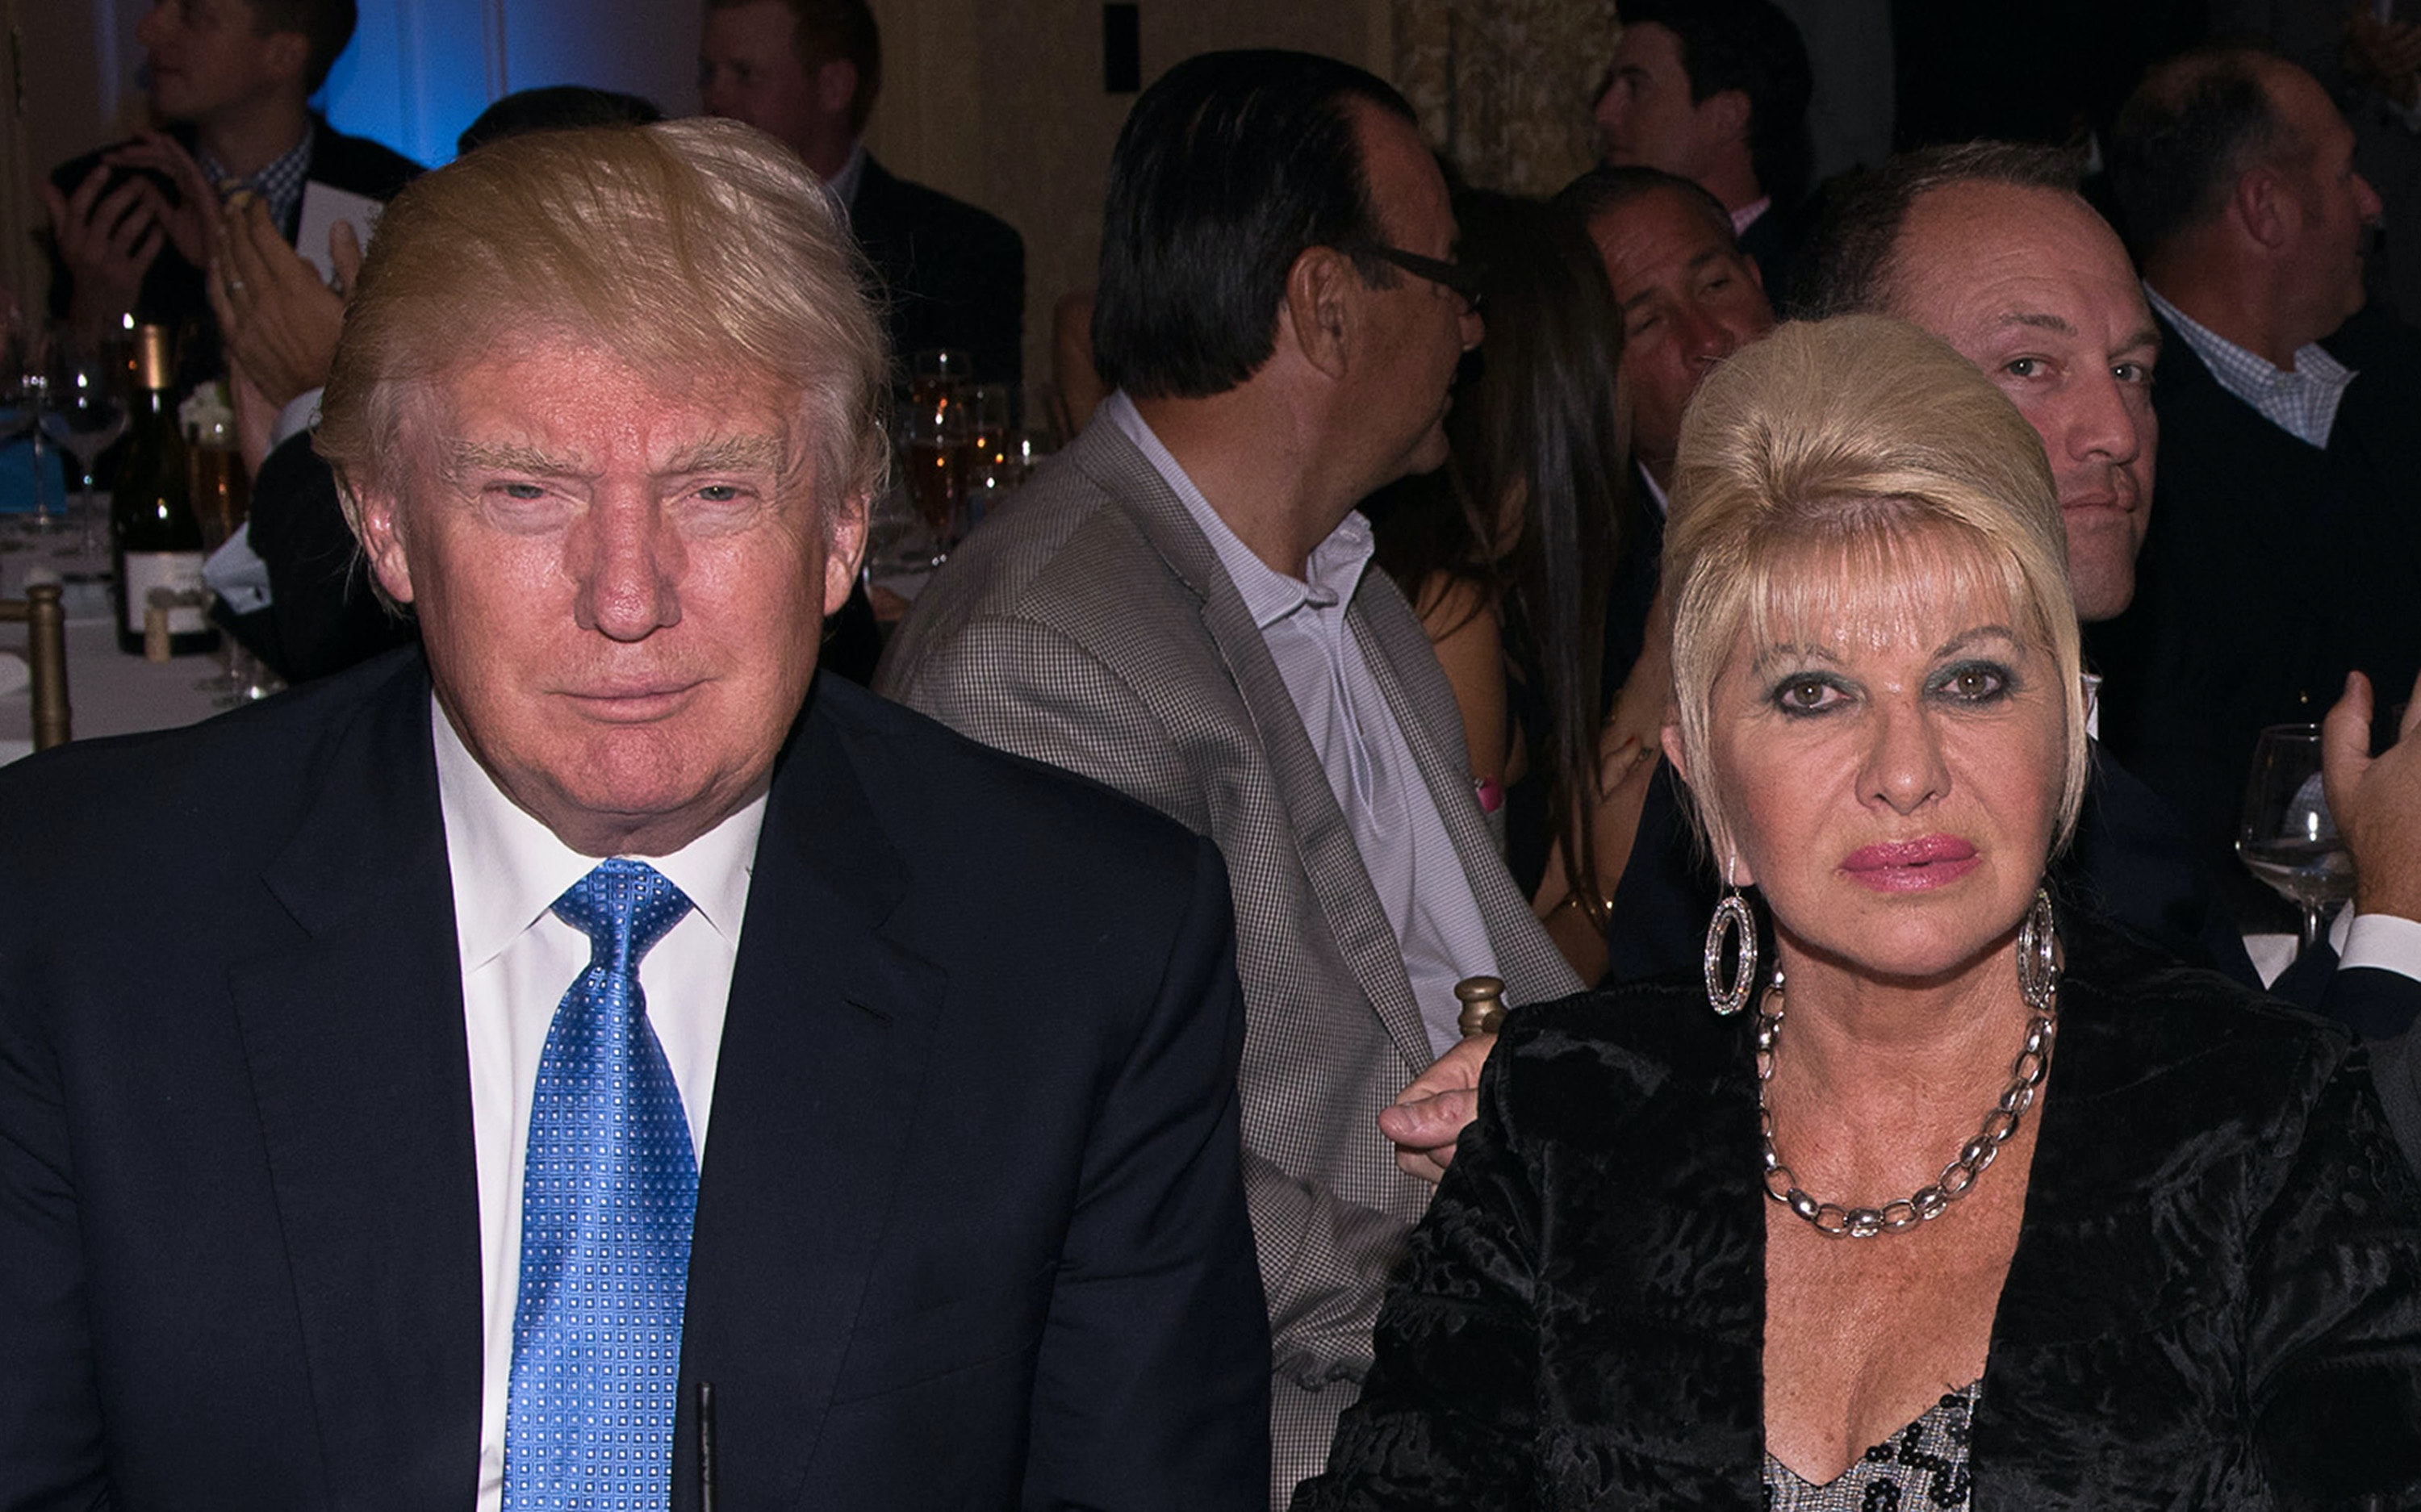 Ivana And Donald Trump Wedding 1977.Why Did Donald Ivana Trump Get Divorced The Reason Is Pretty Clear